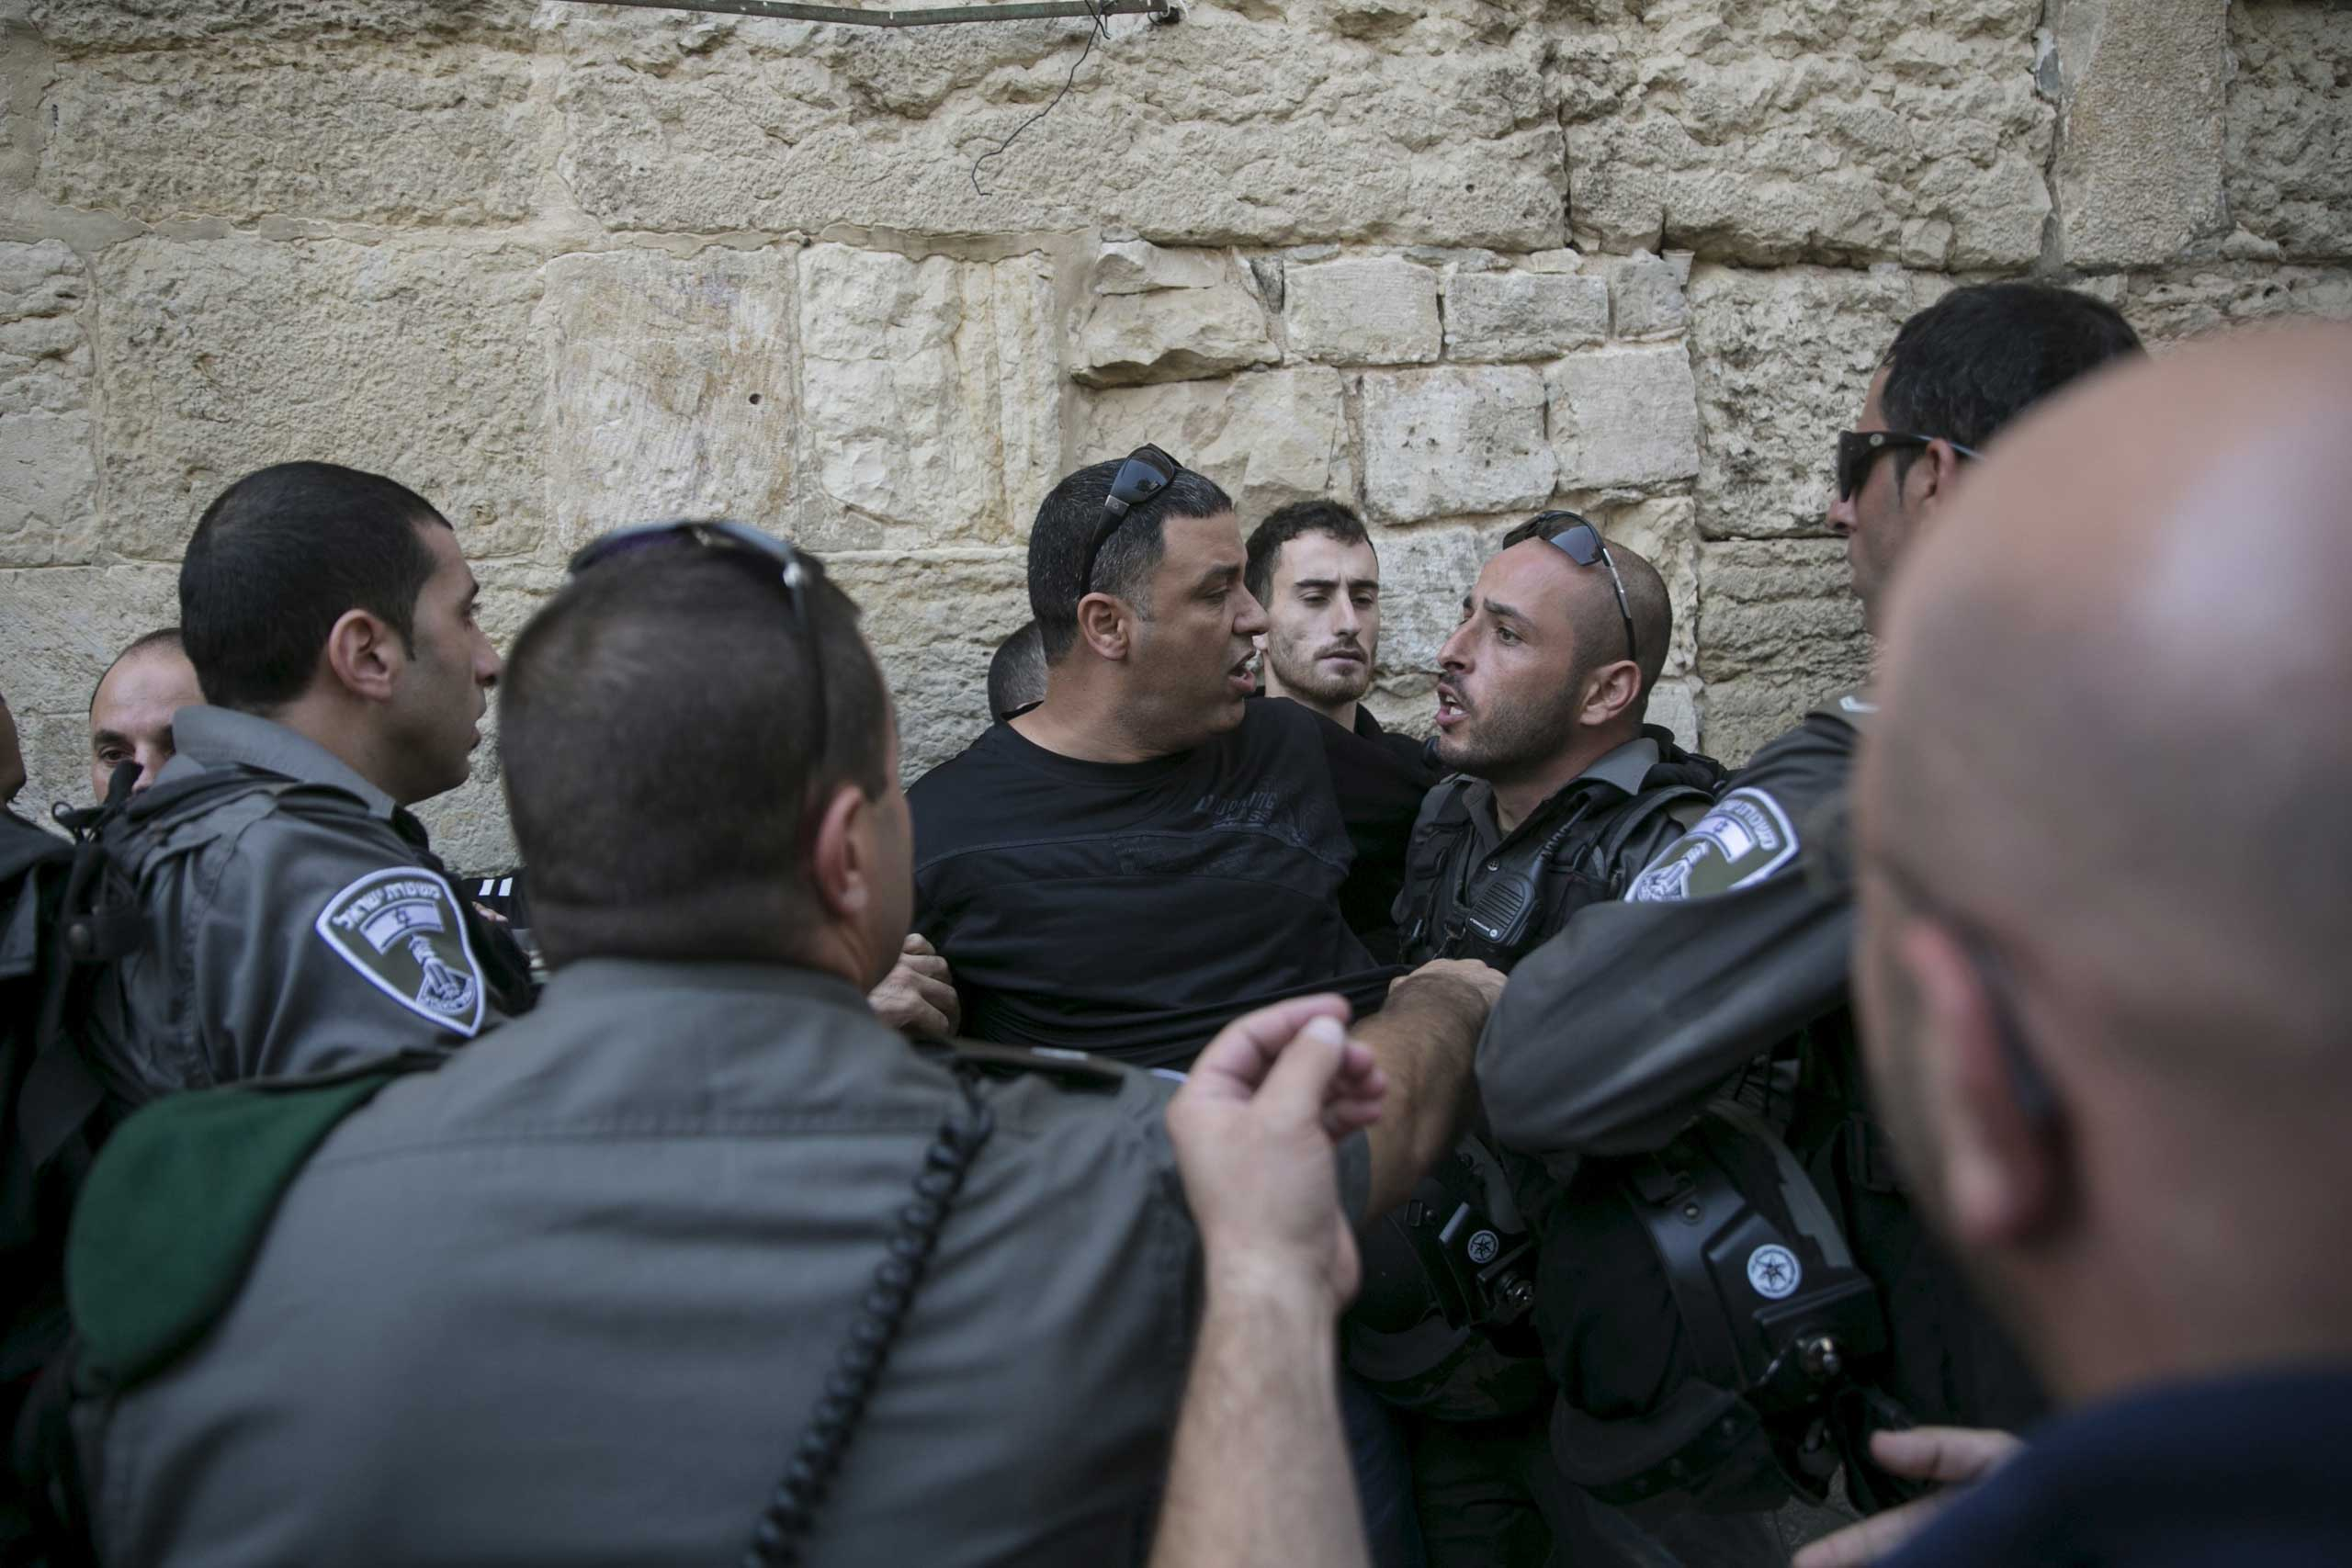 Israeli border police officers detain a Palestinian protester in Jerusalem's Old City, on Sept. 15, 2015.